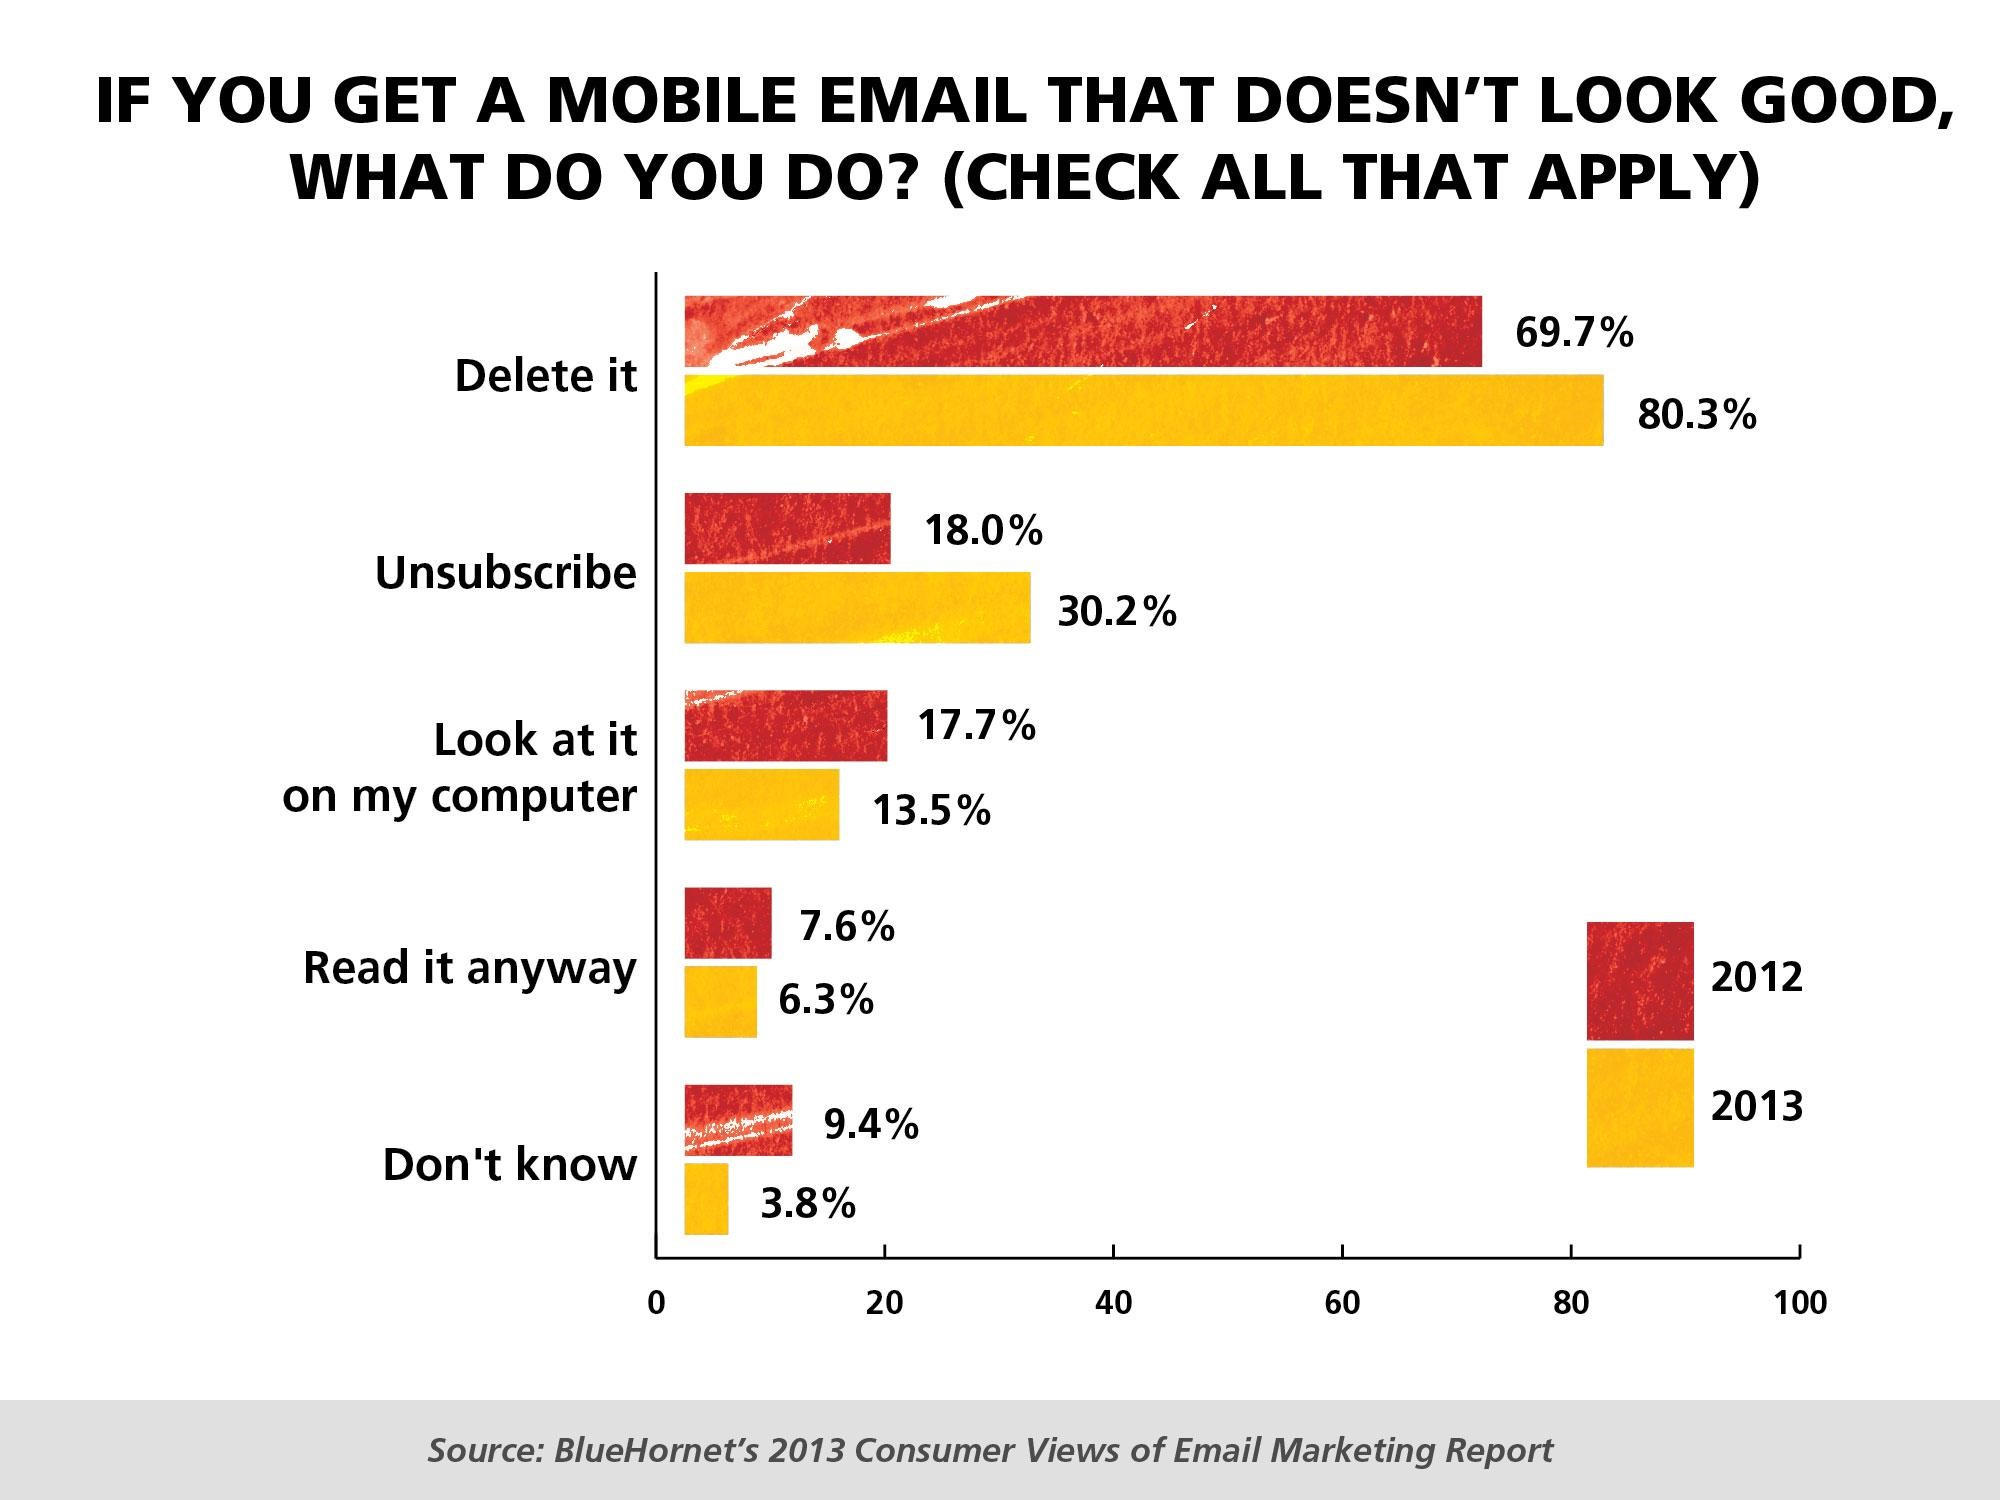 If you get a mobile email that does'nt look good, what do you do